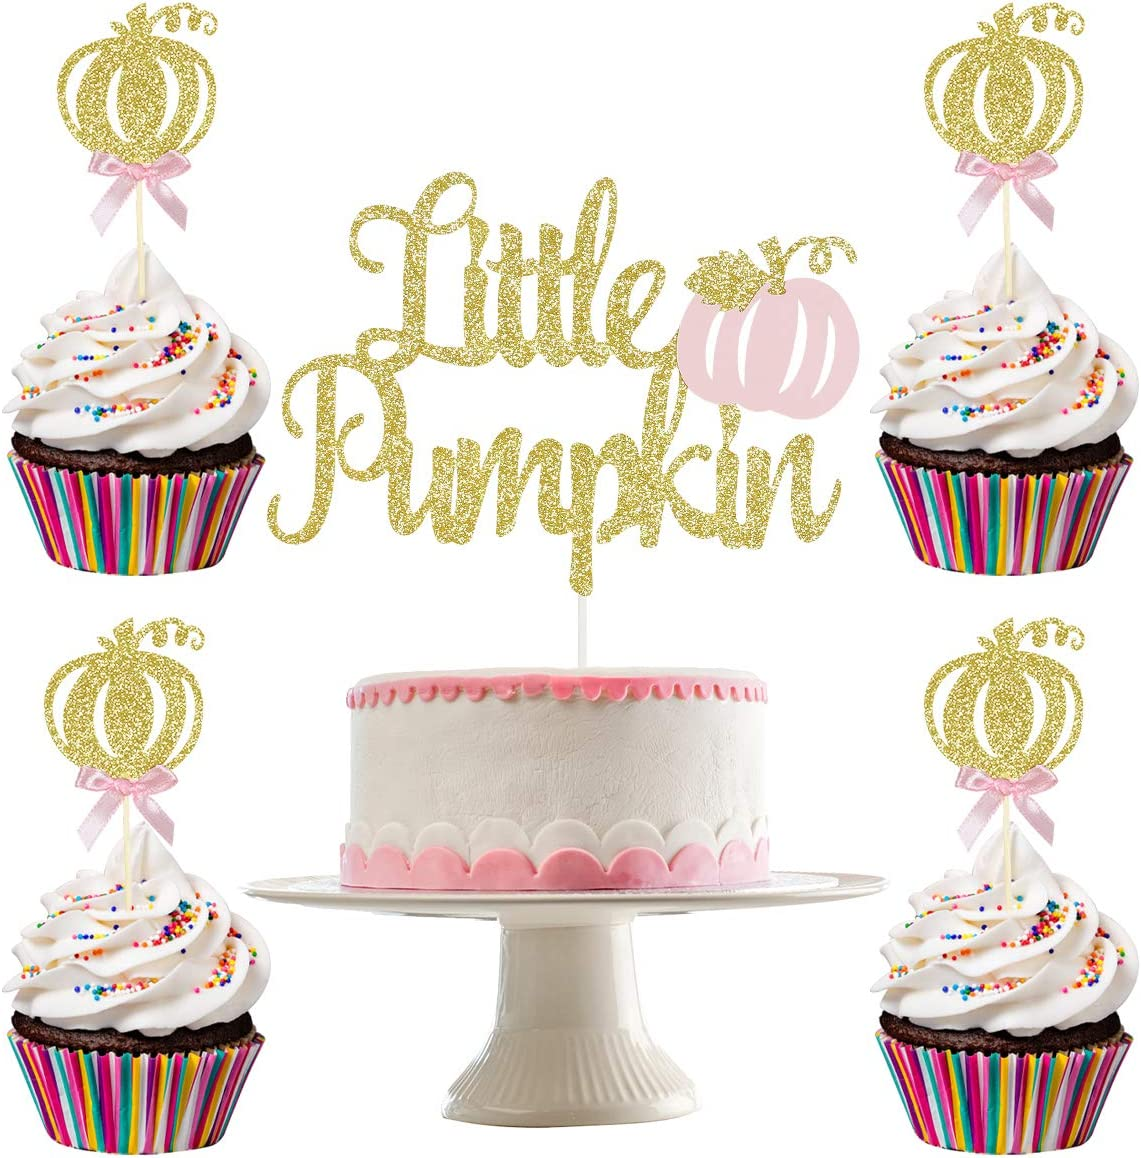 Gold Glittery Pink Little Pumpkin Cake Topper and 24Pcs Glittery Pumpkin Cupcake Topper- Fall Pumpkin Baby Shower Decor,Pink Girl Fall Baby Shower Birthday Party Decorations Supplies